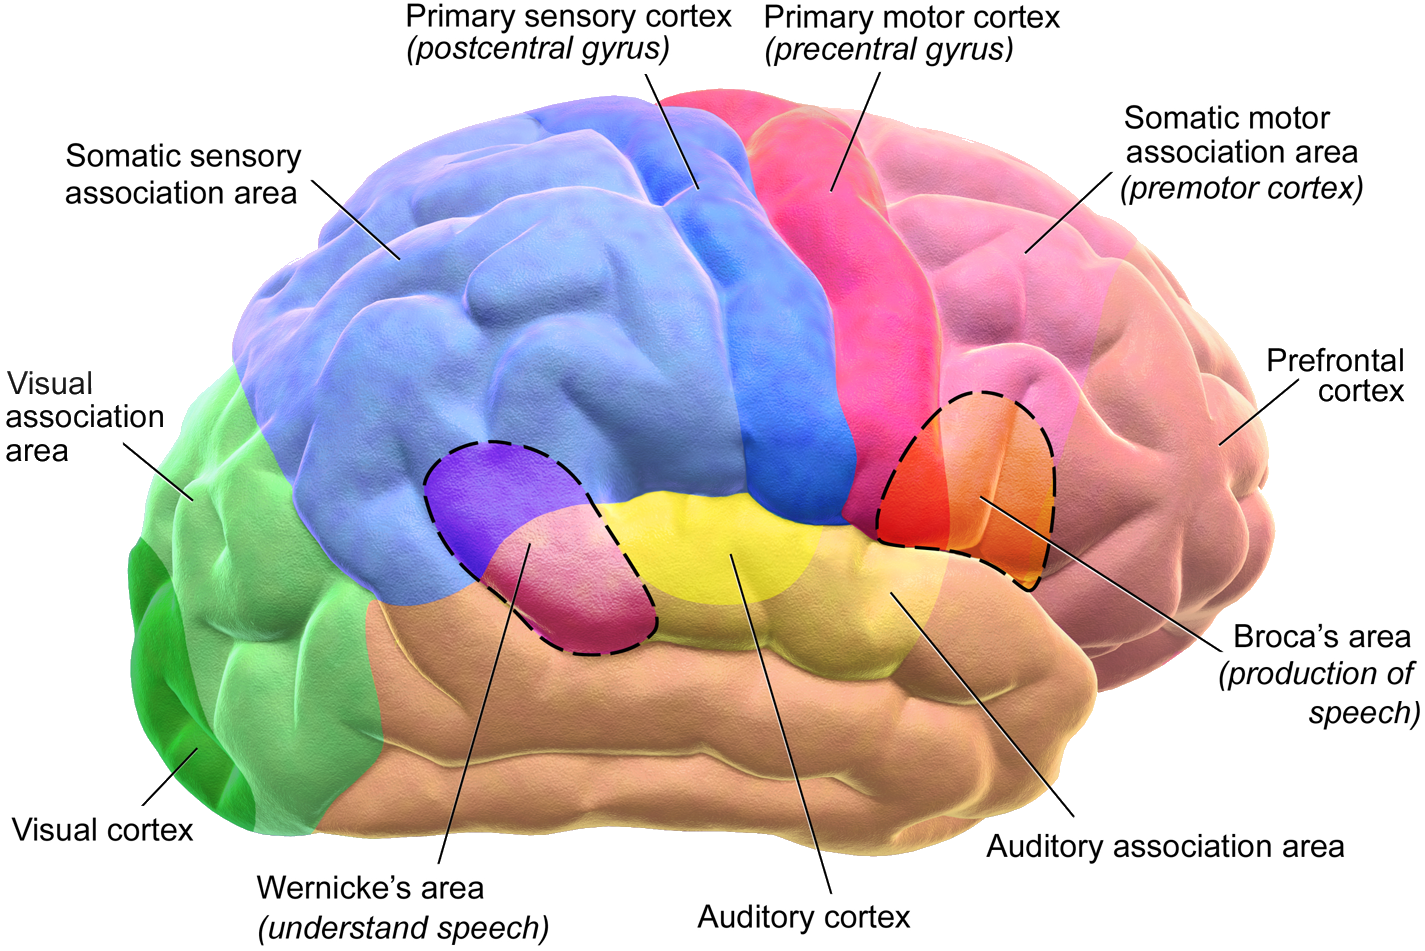 human brain wikipedia Printable Diagram of the Brain